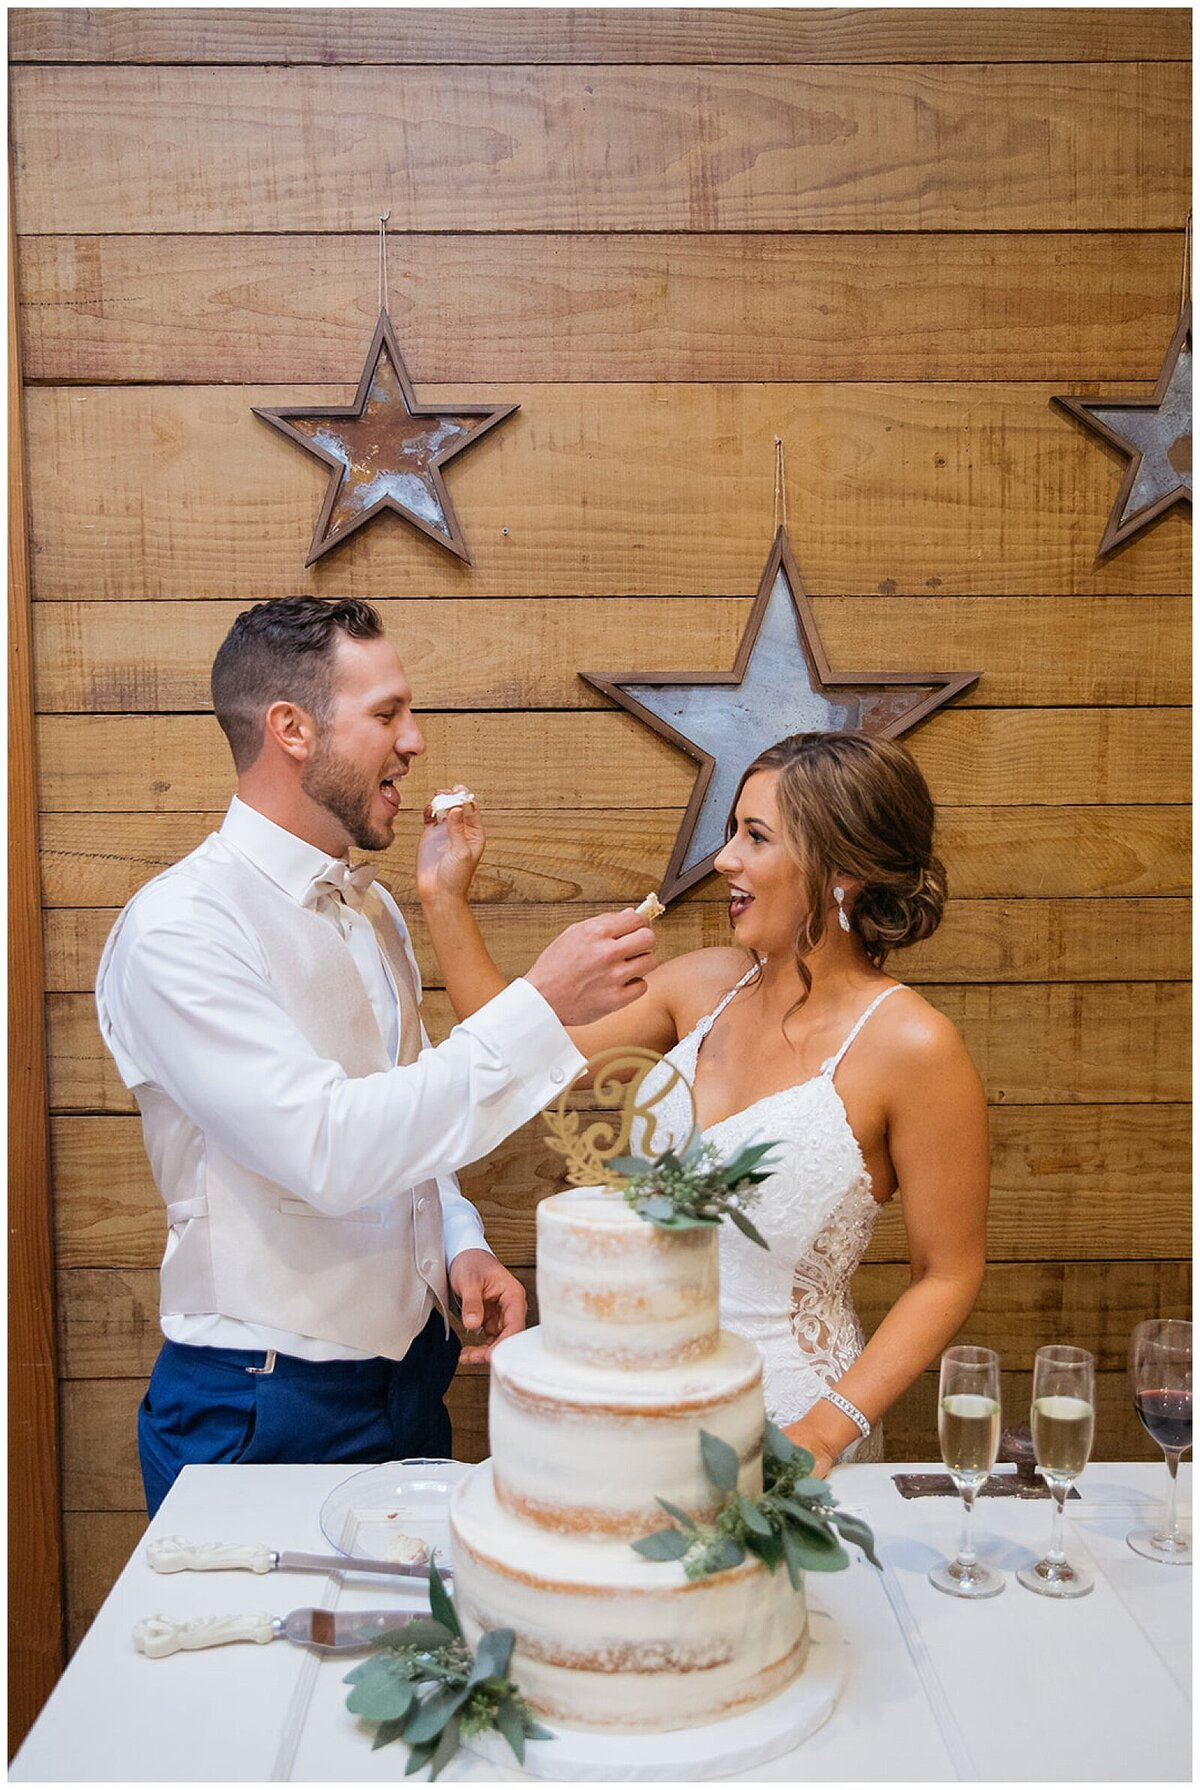 Rustic Greenery Indoor Outdoor Wedding at Emery's Buffalo Creek - Houston Wedding Venue_0134